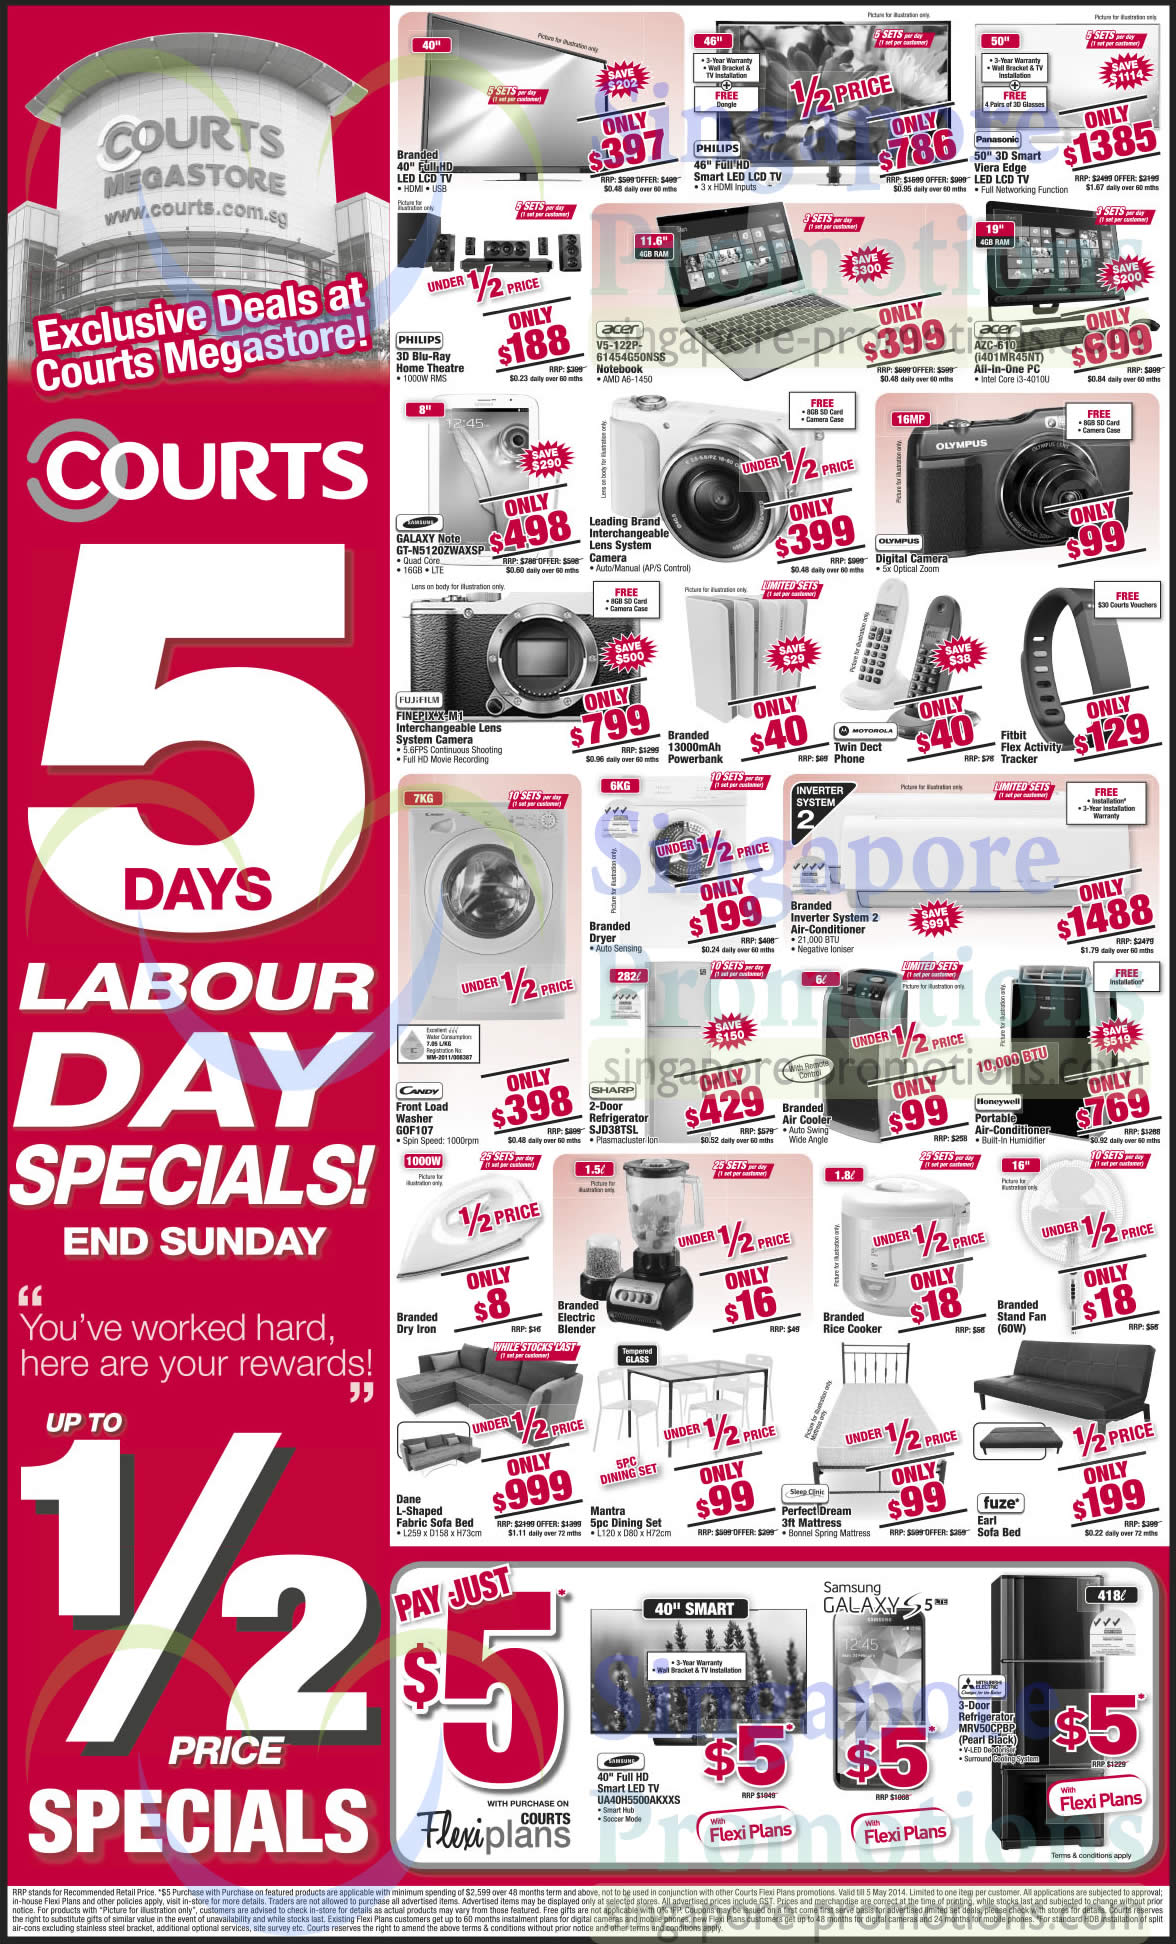 Featured image for Courts 5 Days Labour Day Special Sale 1 - 4 May 2014